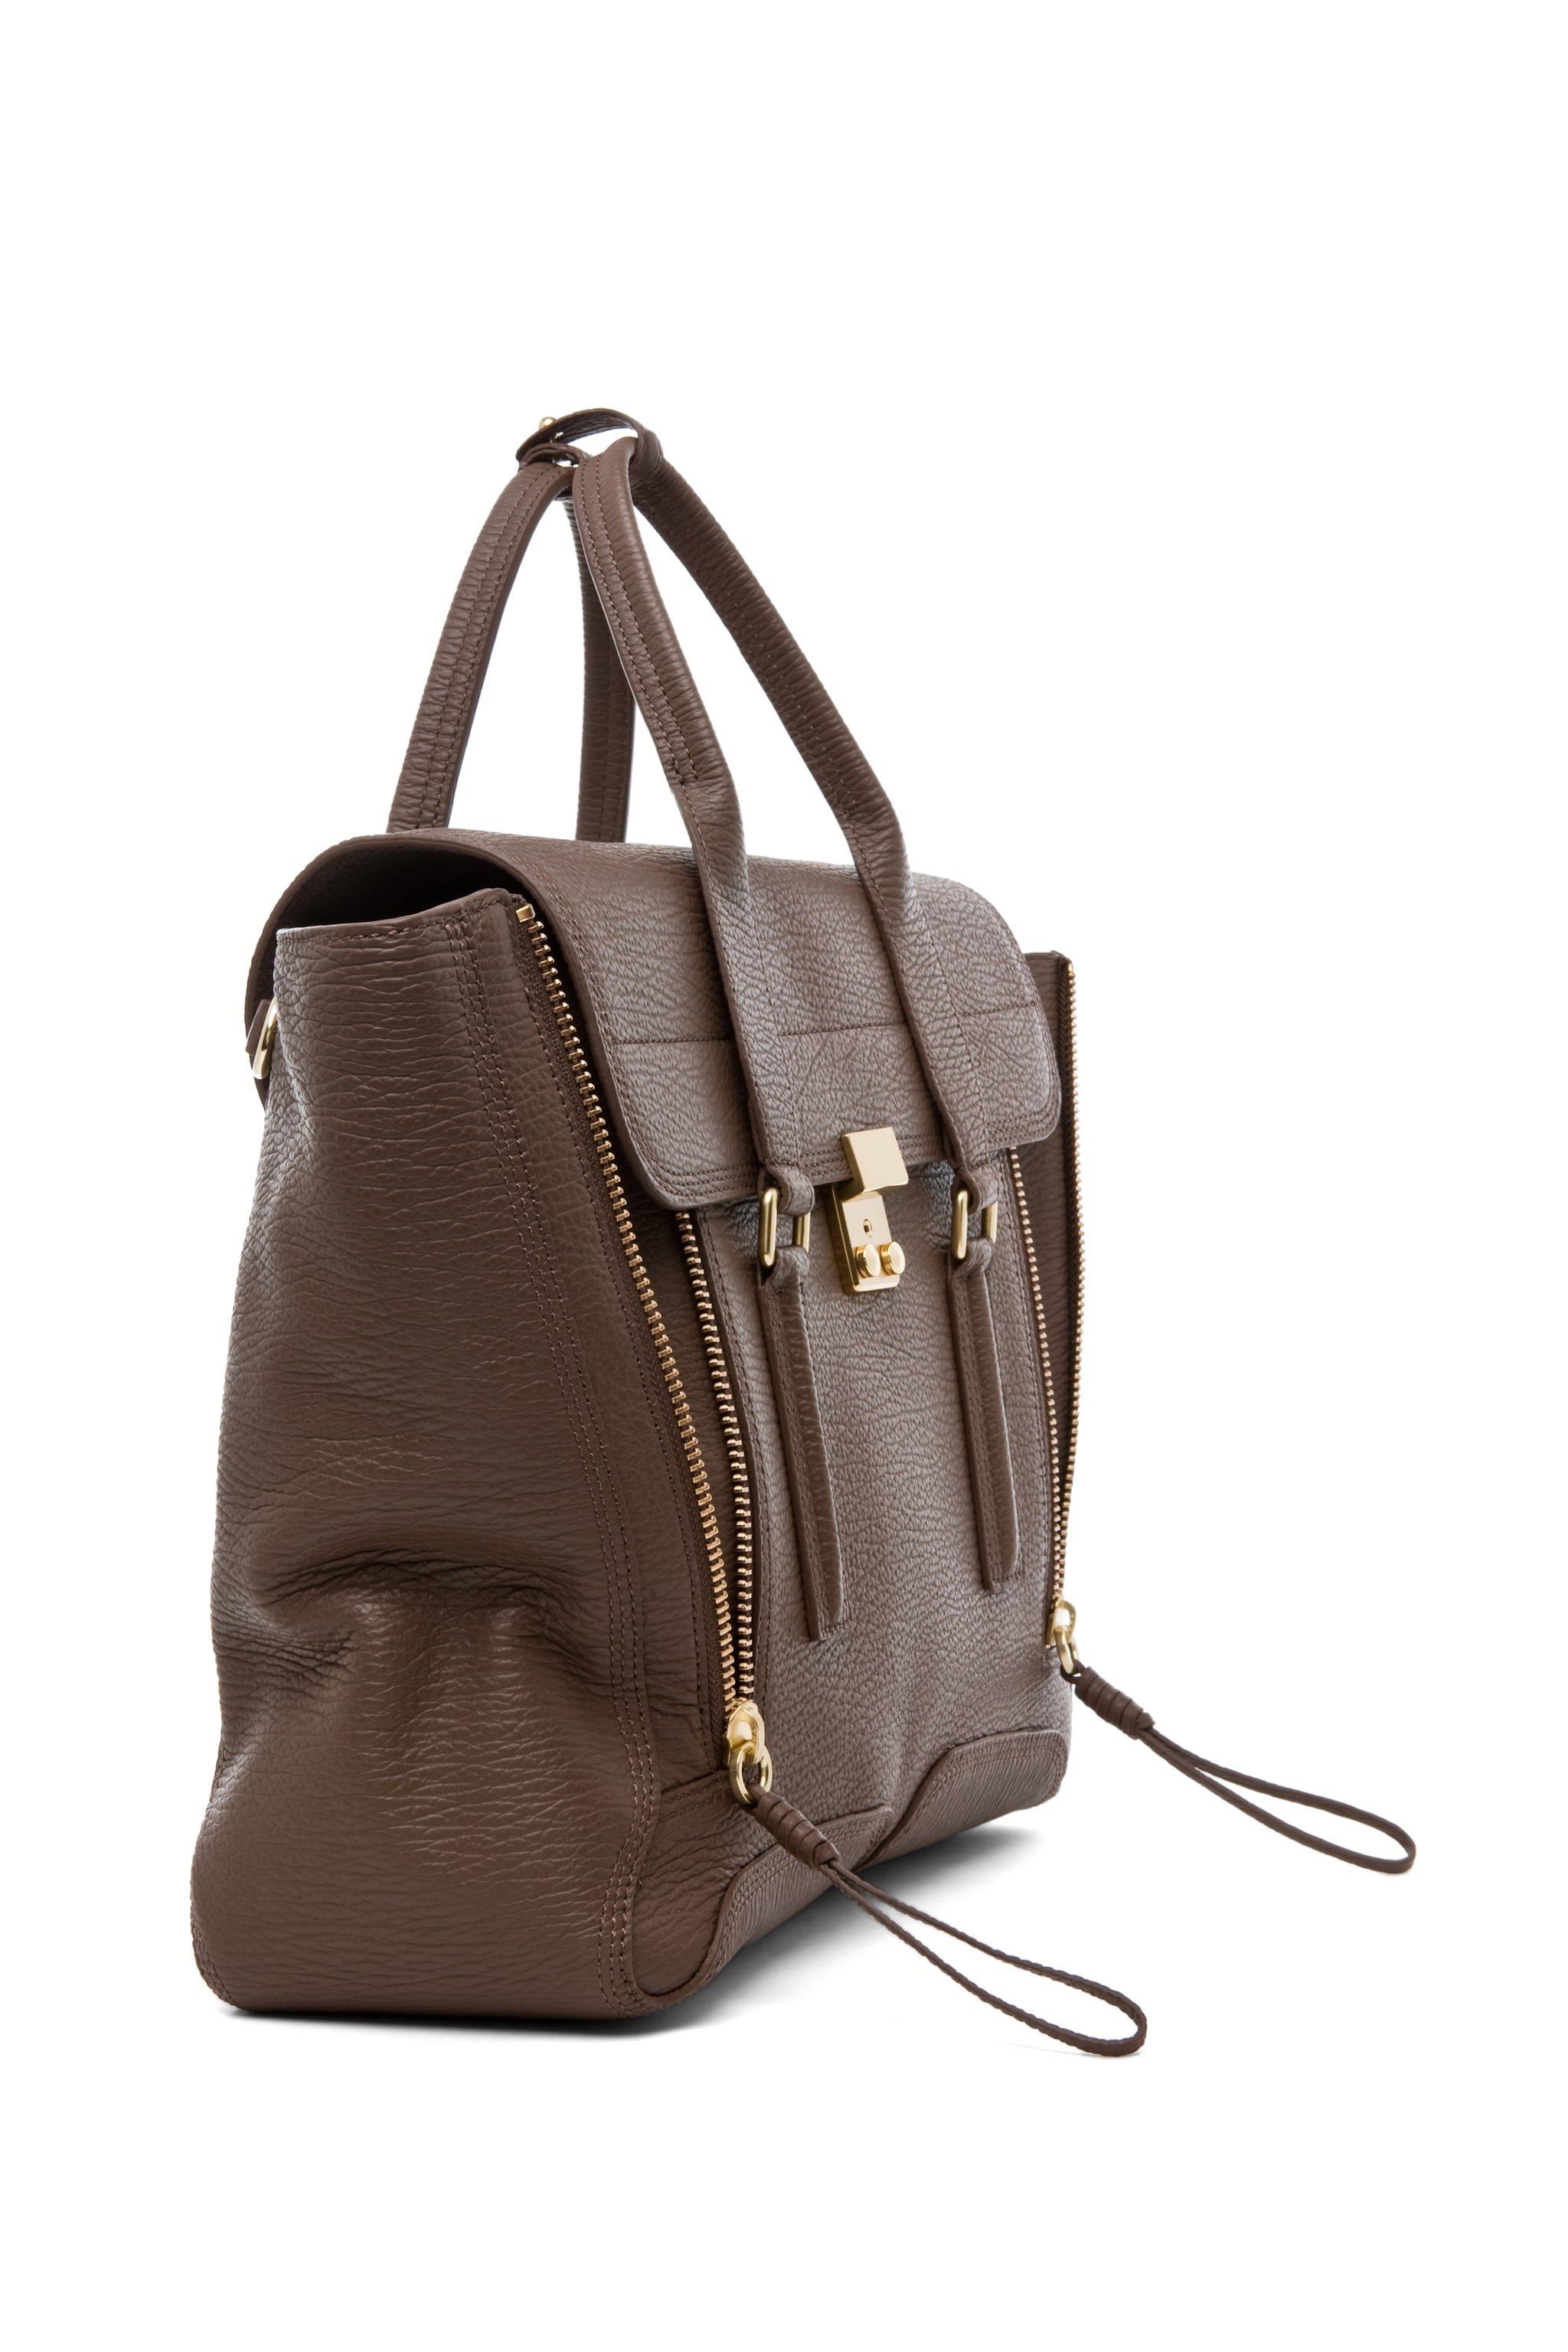 Image 3 of 3.1 phillip lim Pashli Satchel in Taupe